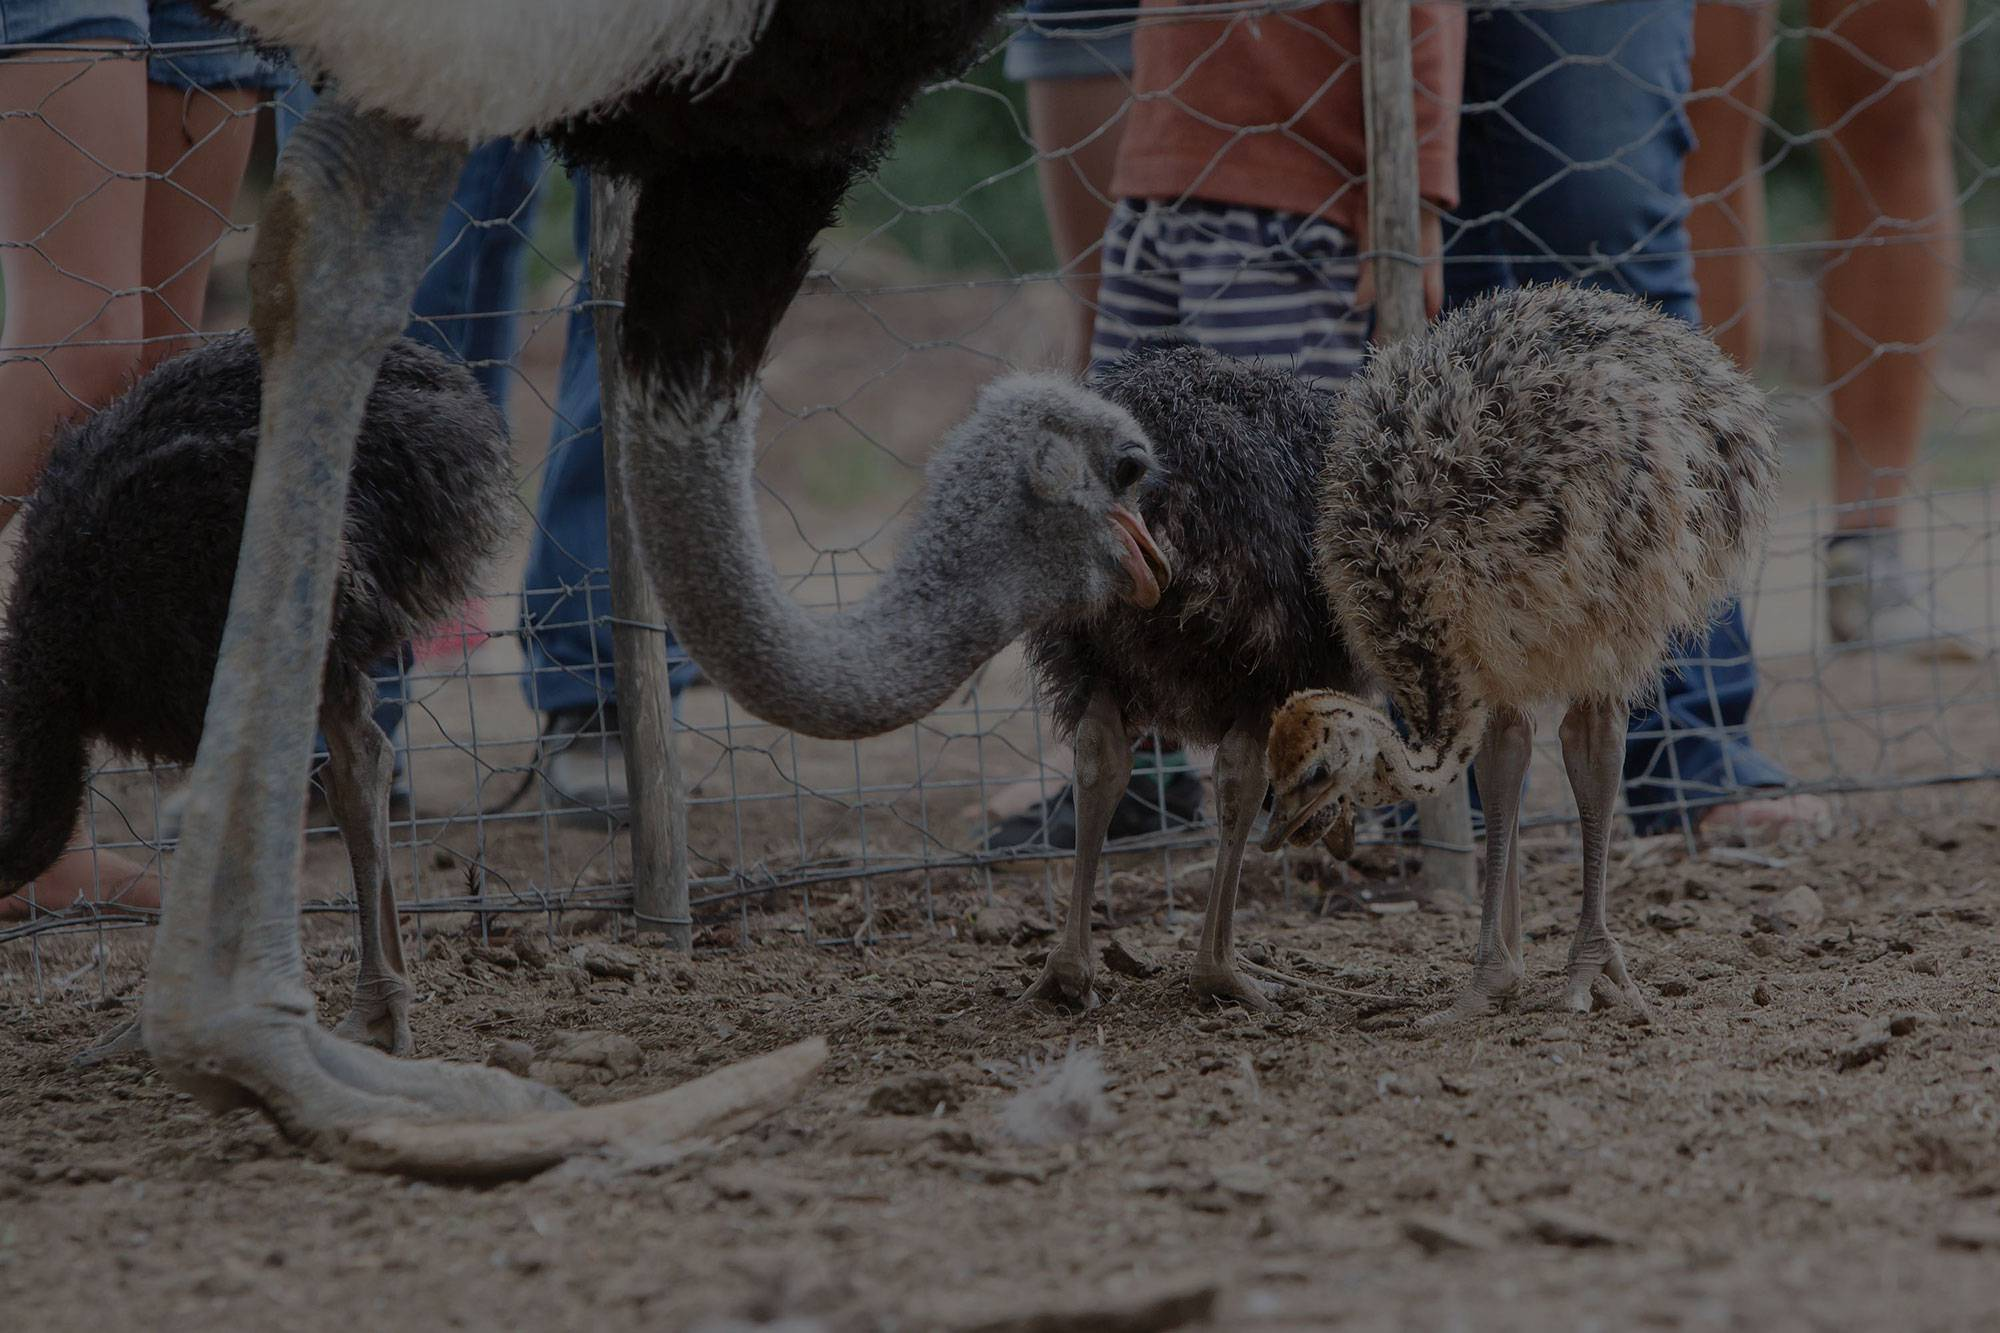 Ostrich Farm Tours at Chandelier